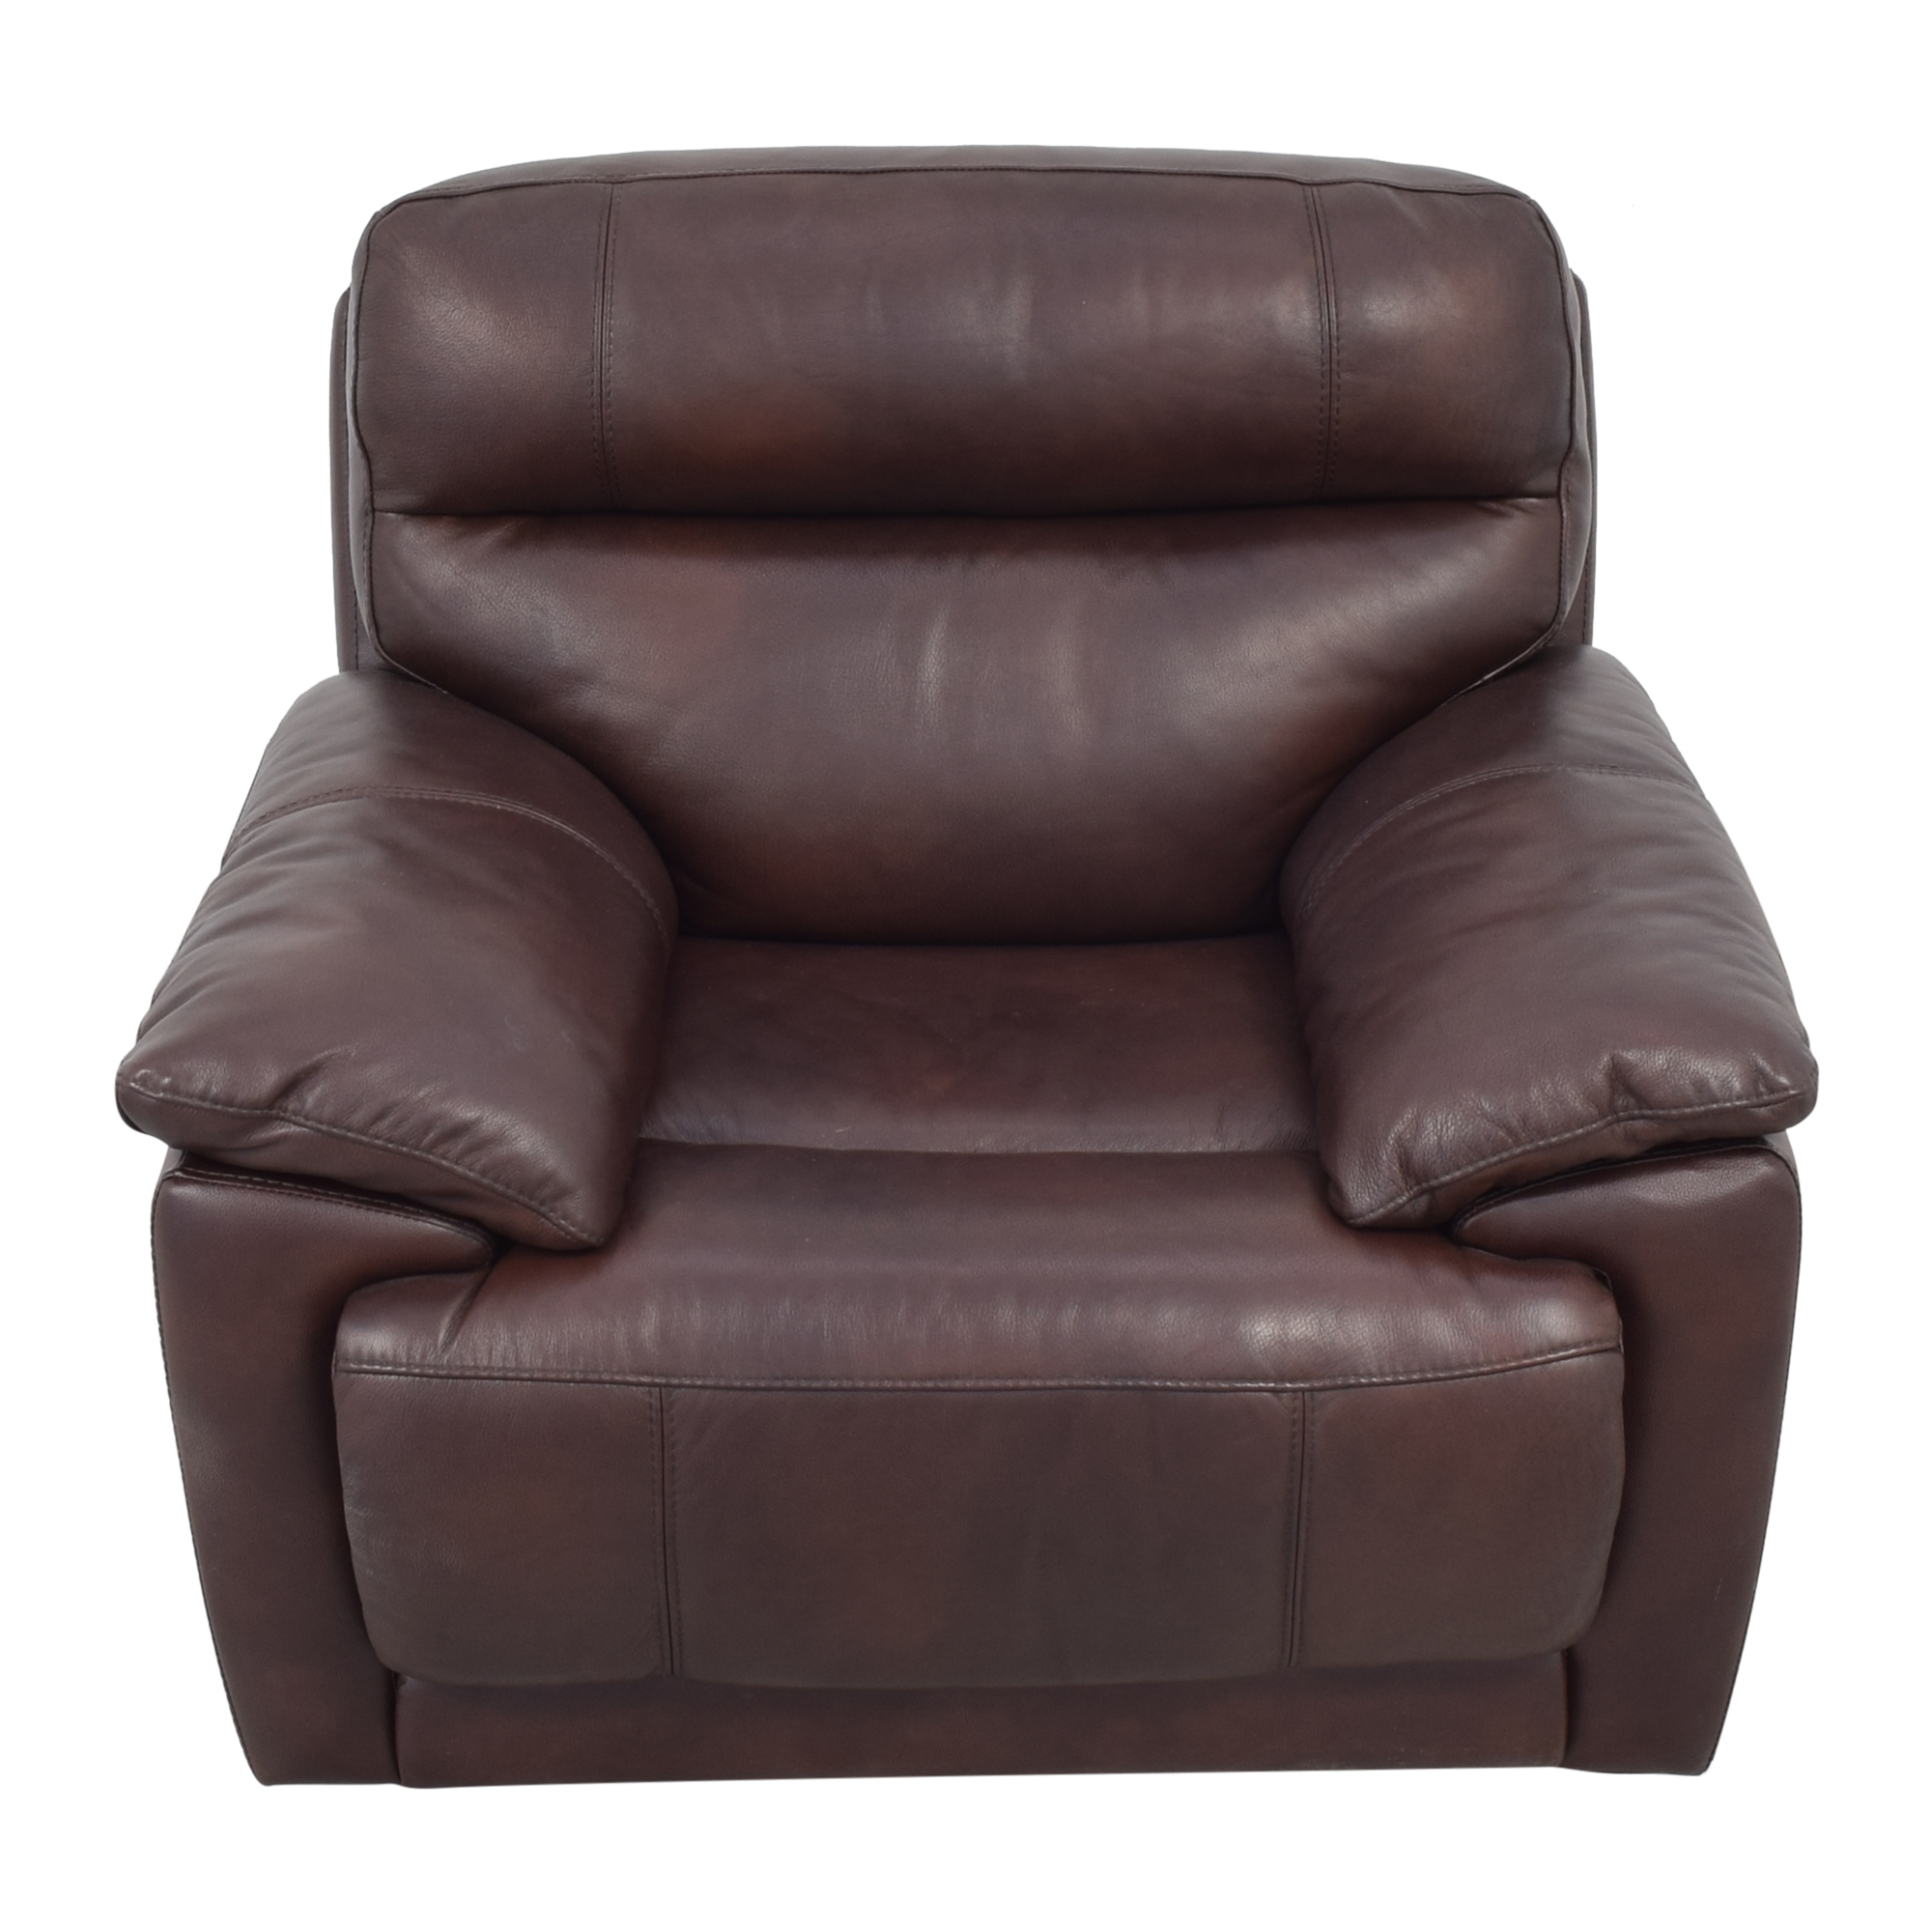 Raymour & Flanigan Raymour & Flanigan Power Recliner second hand